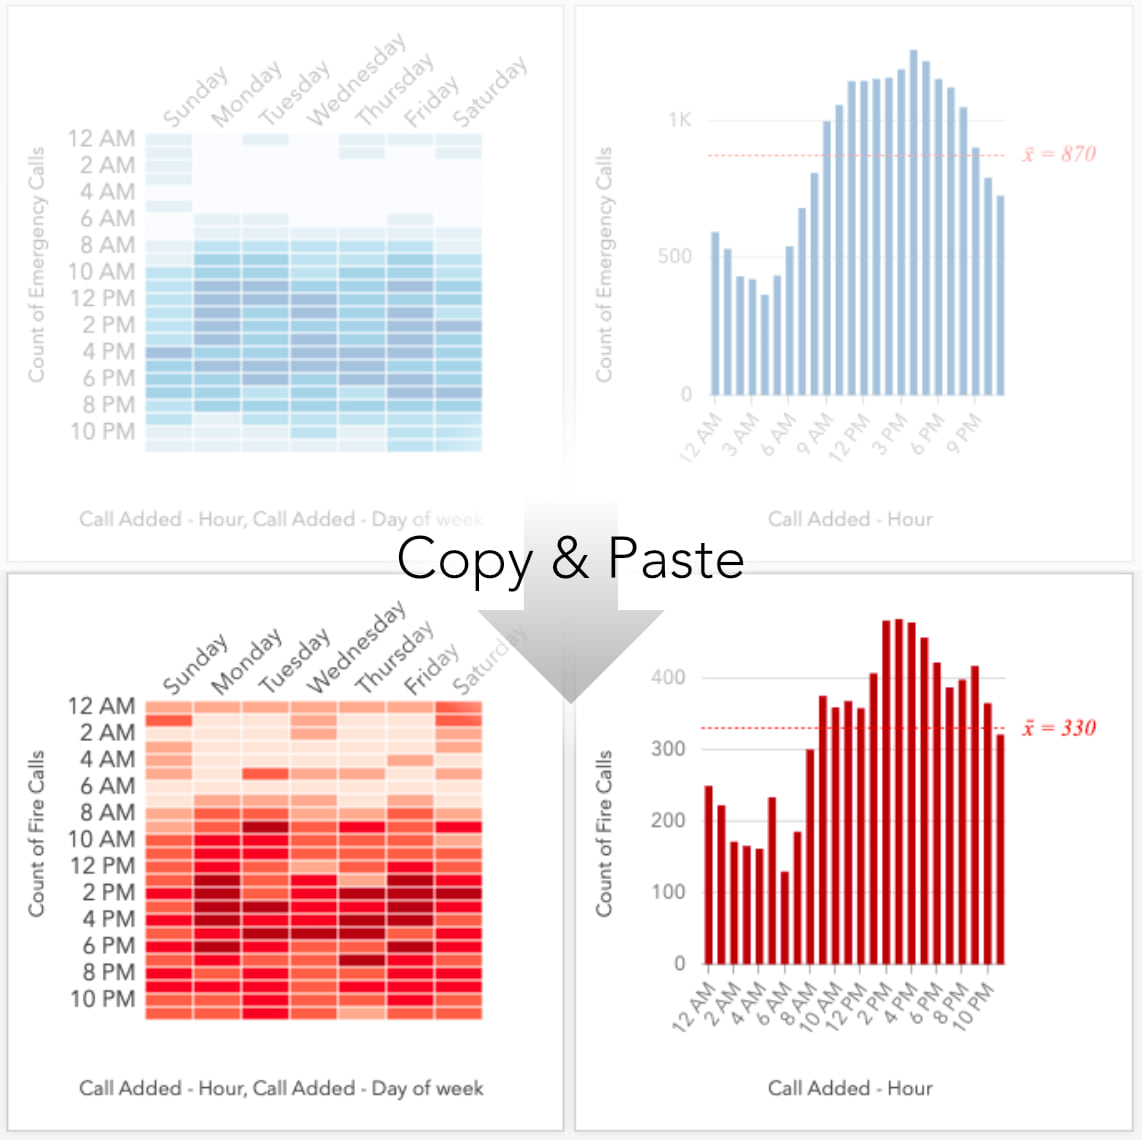 Copying cards in ArcGIS Insights.